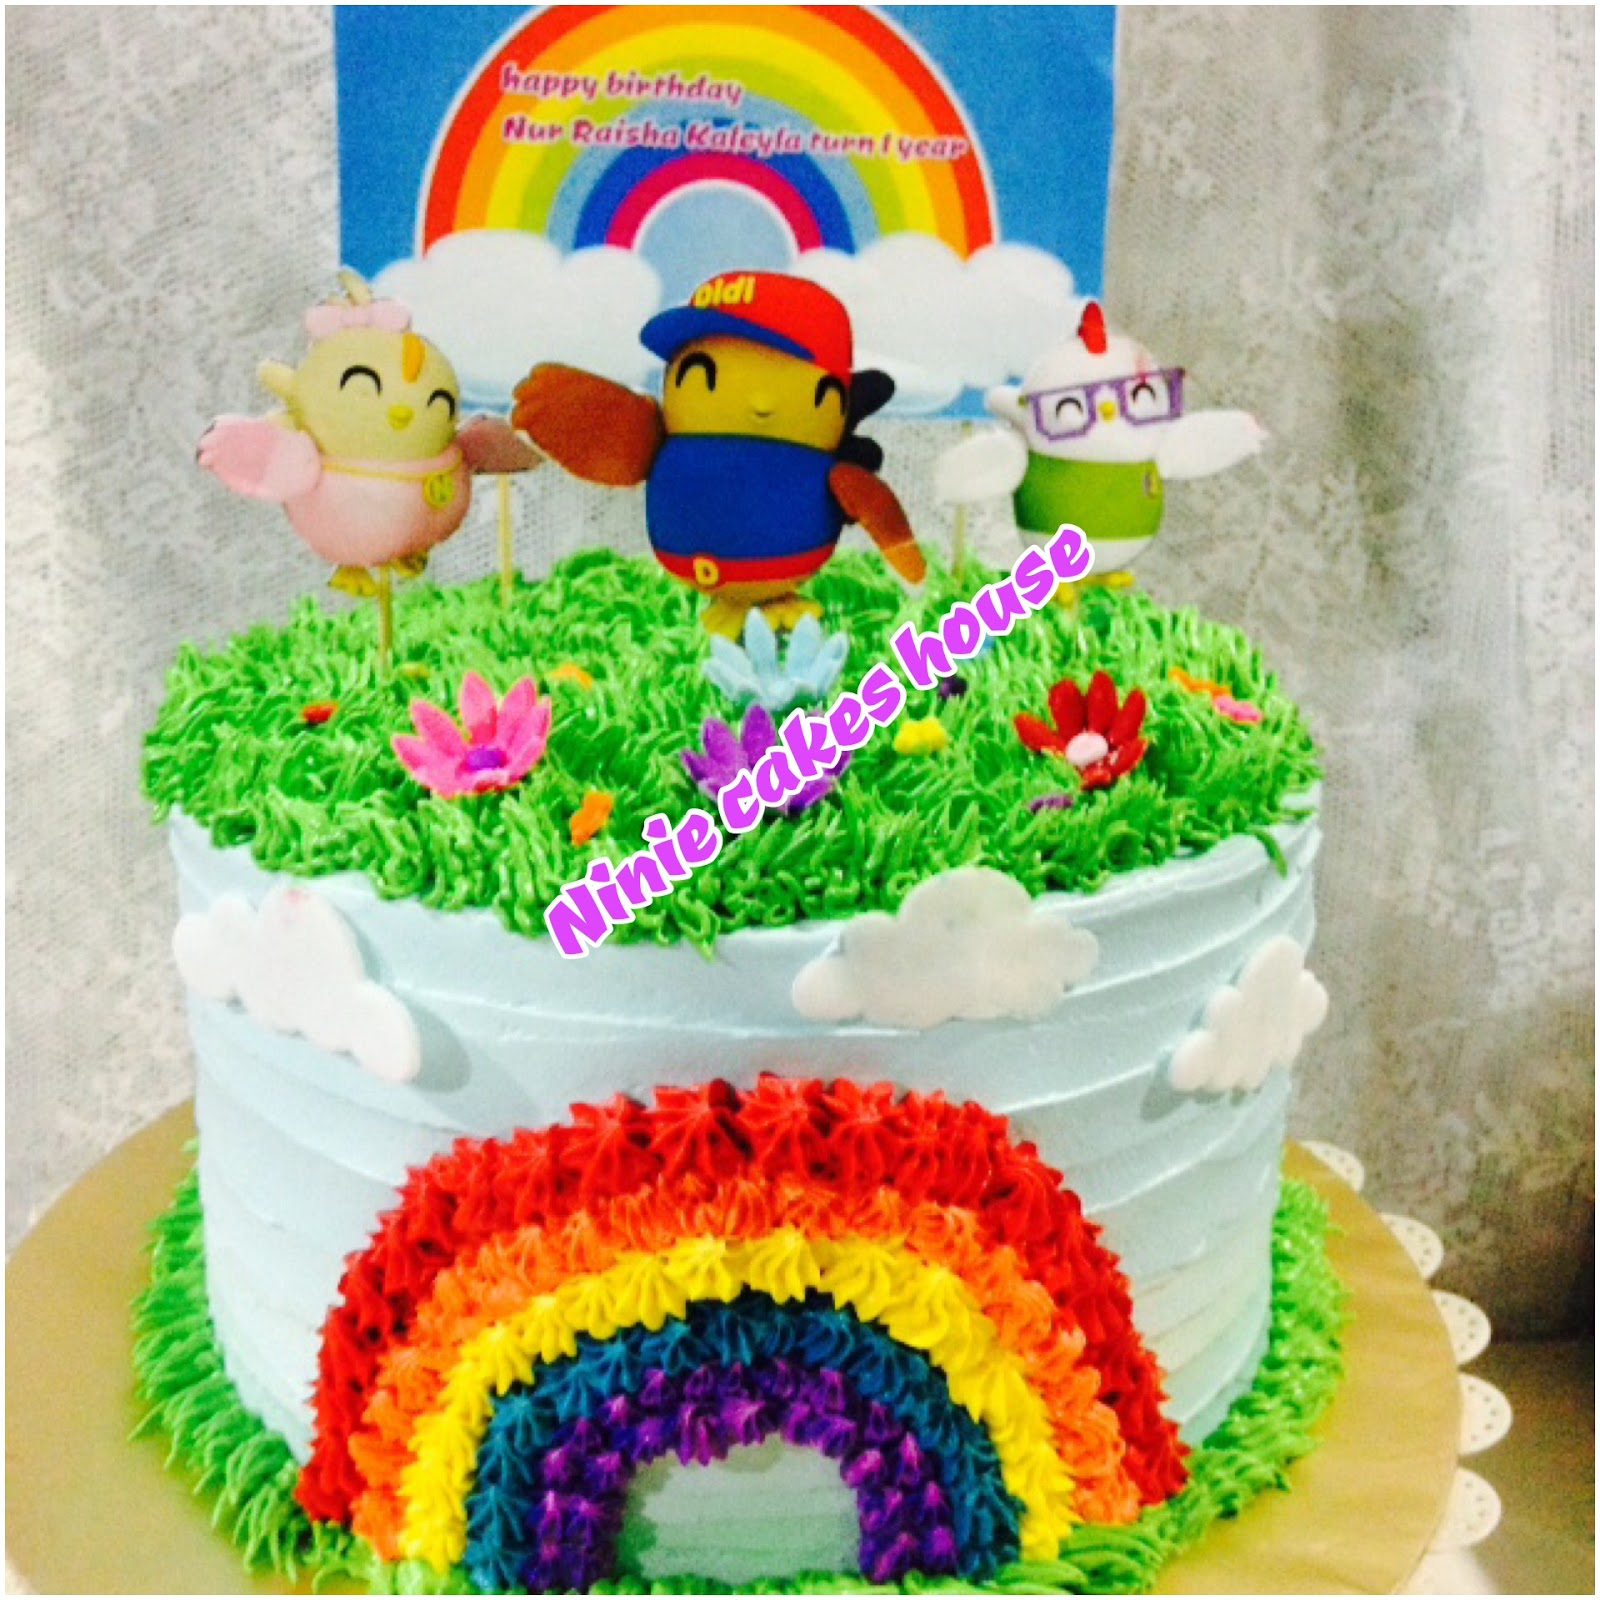 Images Of Birthday Cake For Friend : ninie cakes house: Didi & Friends Birthday Cake